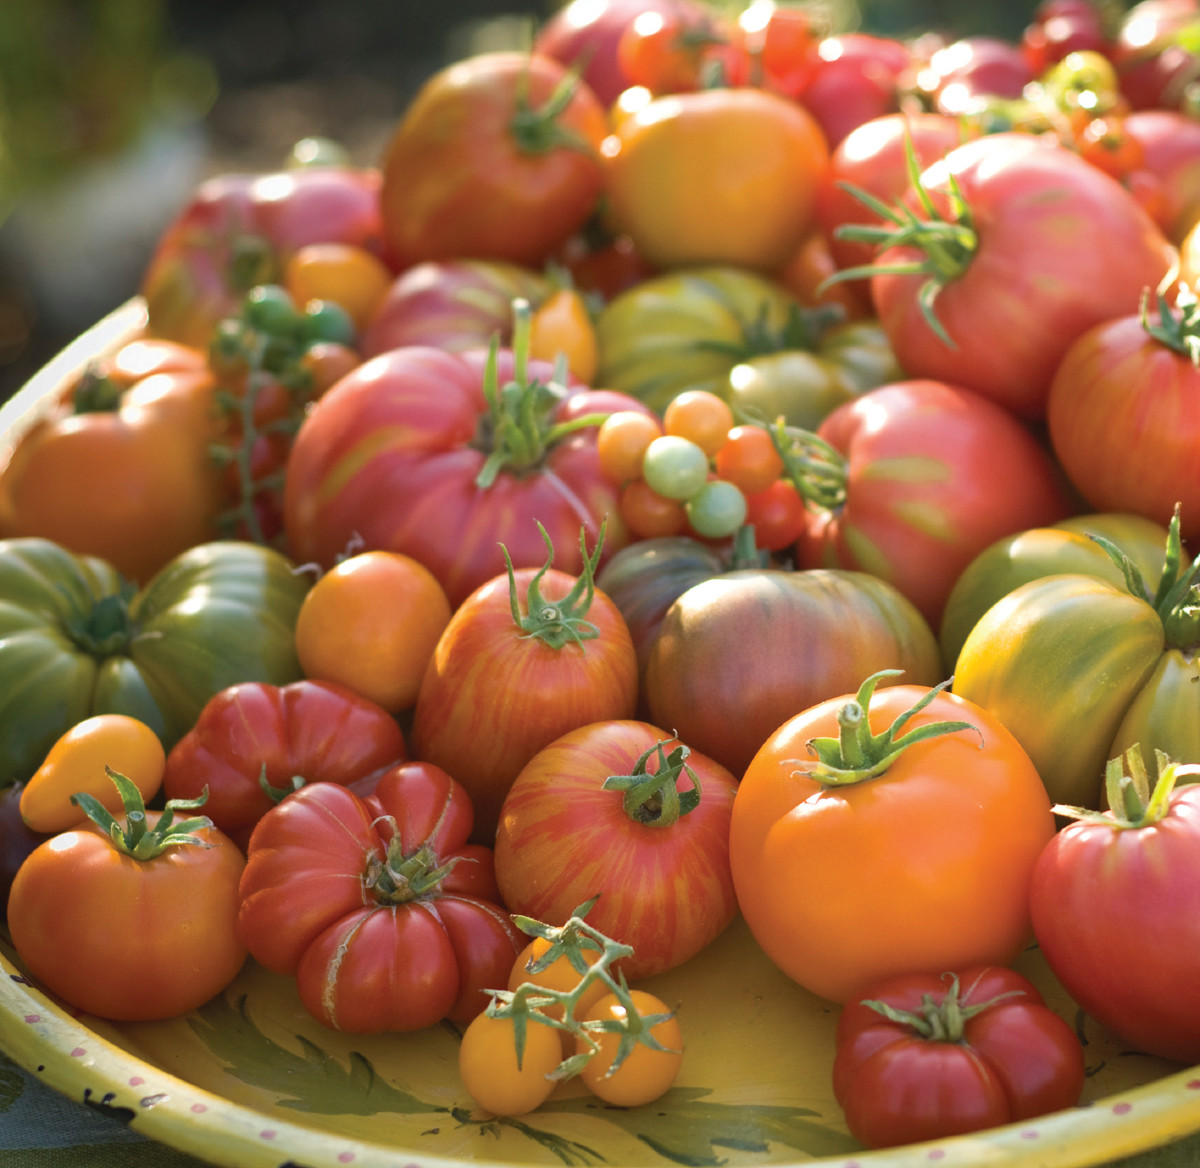 Tomatoes for health benefits